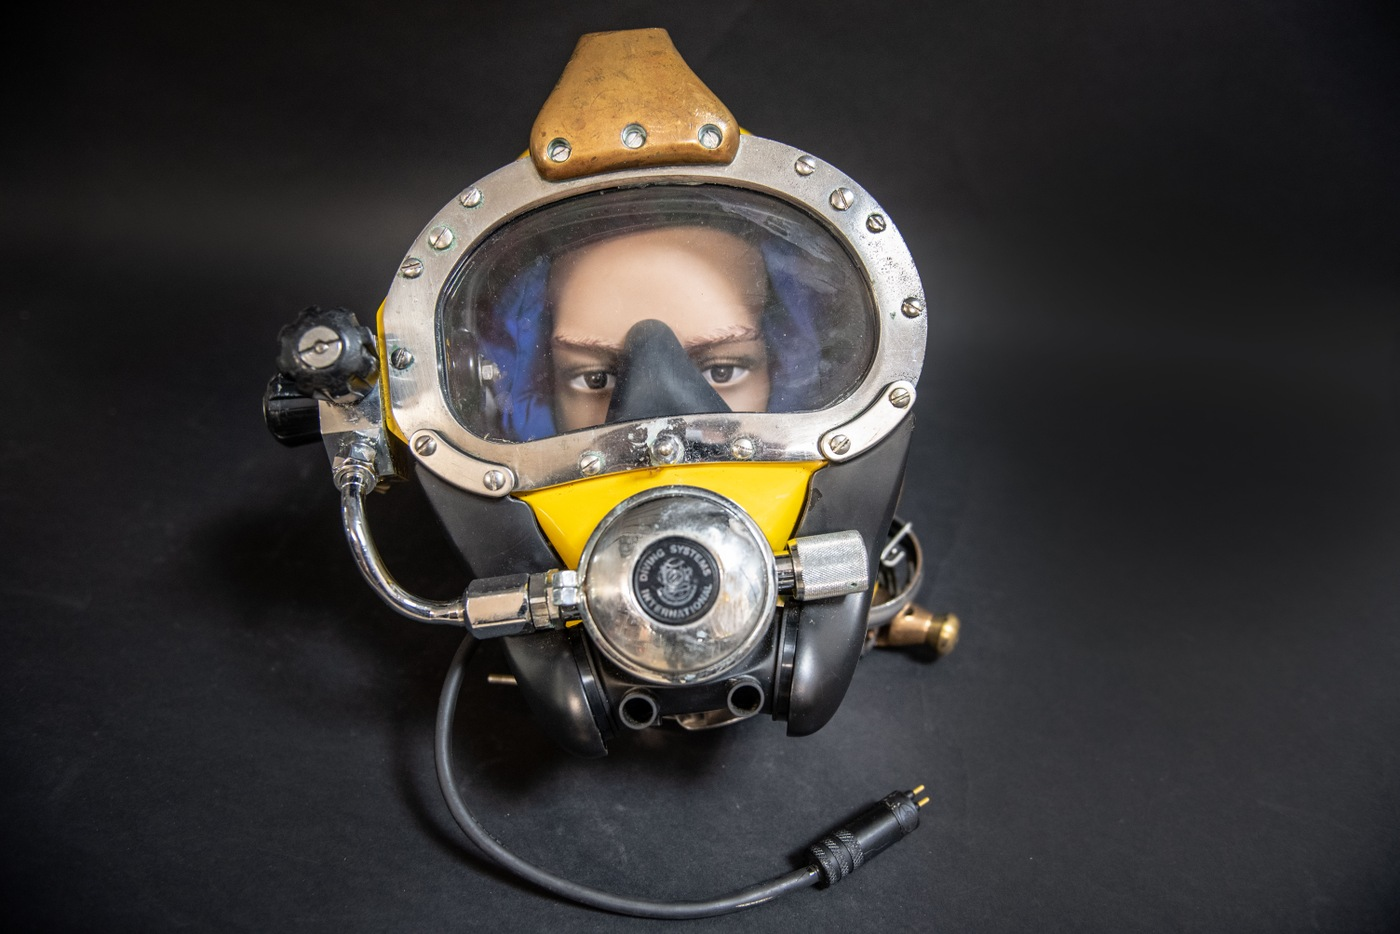 The FBI's January Artifact of the Month is a Kirby Morgan SuperLite 27—a diving helmet FBI divers used to wear.